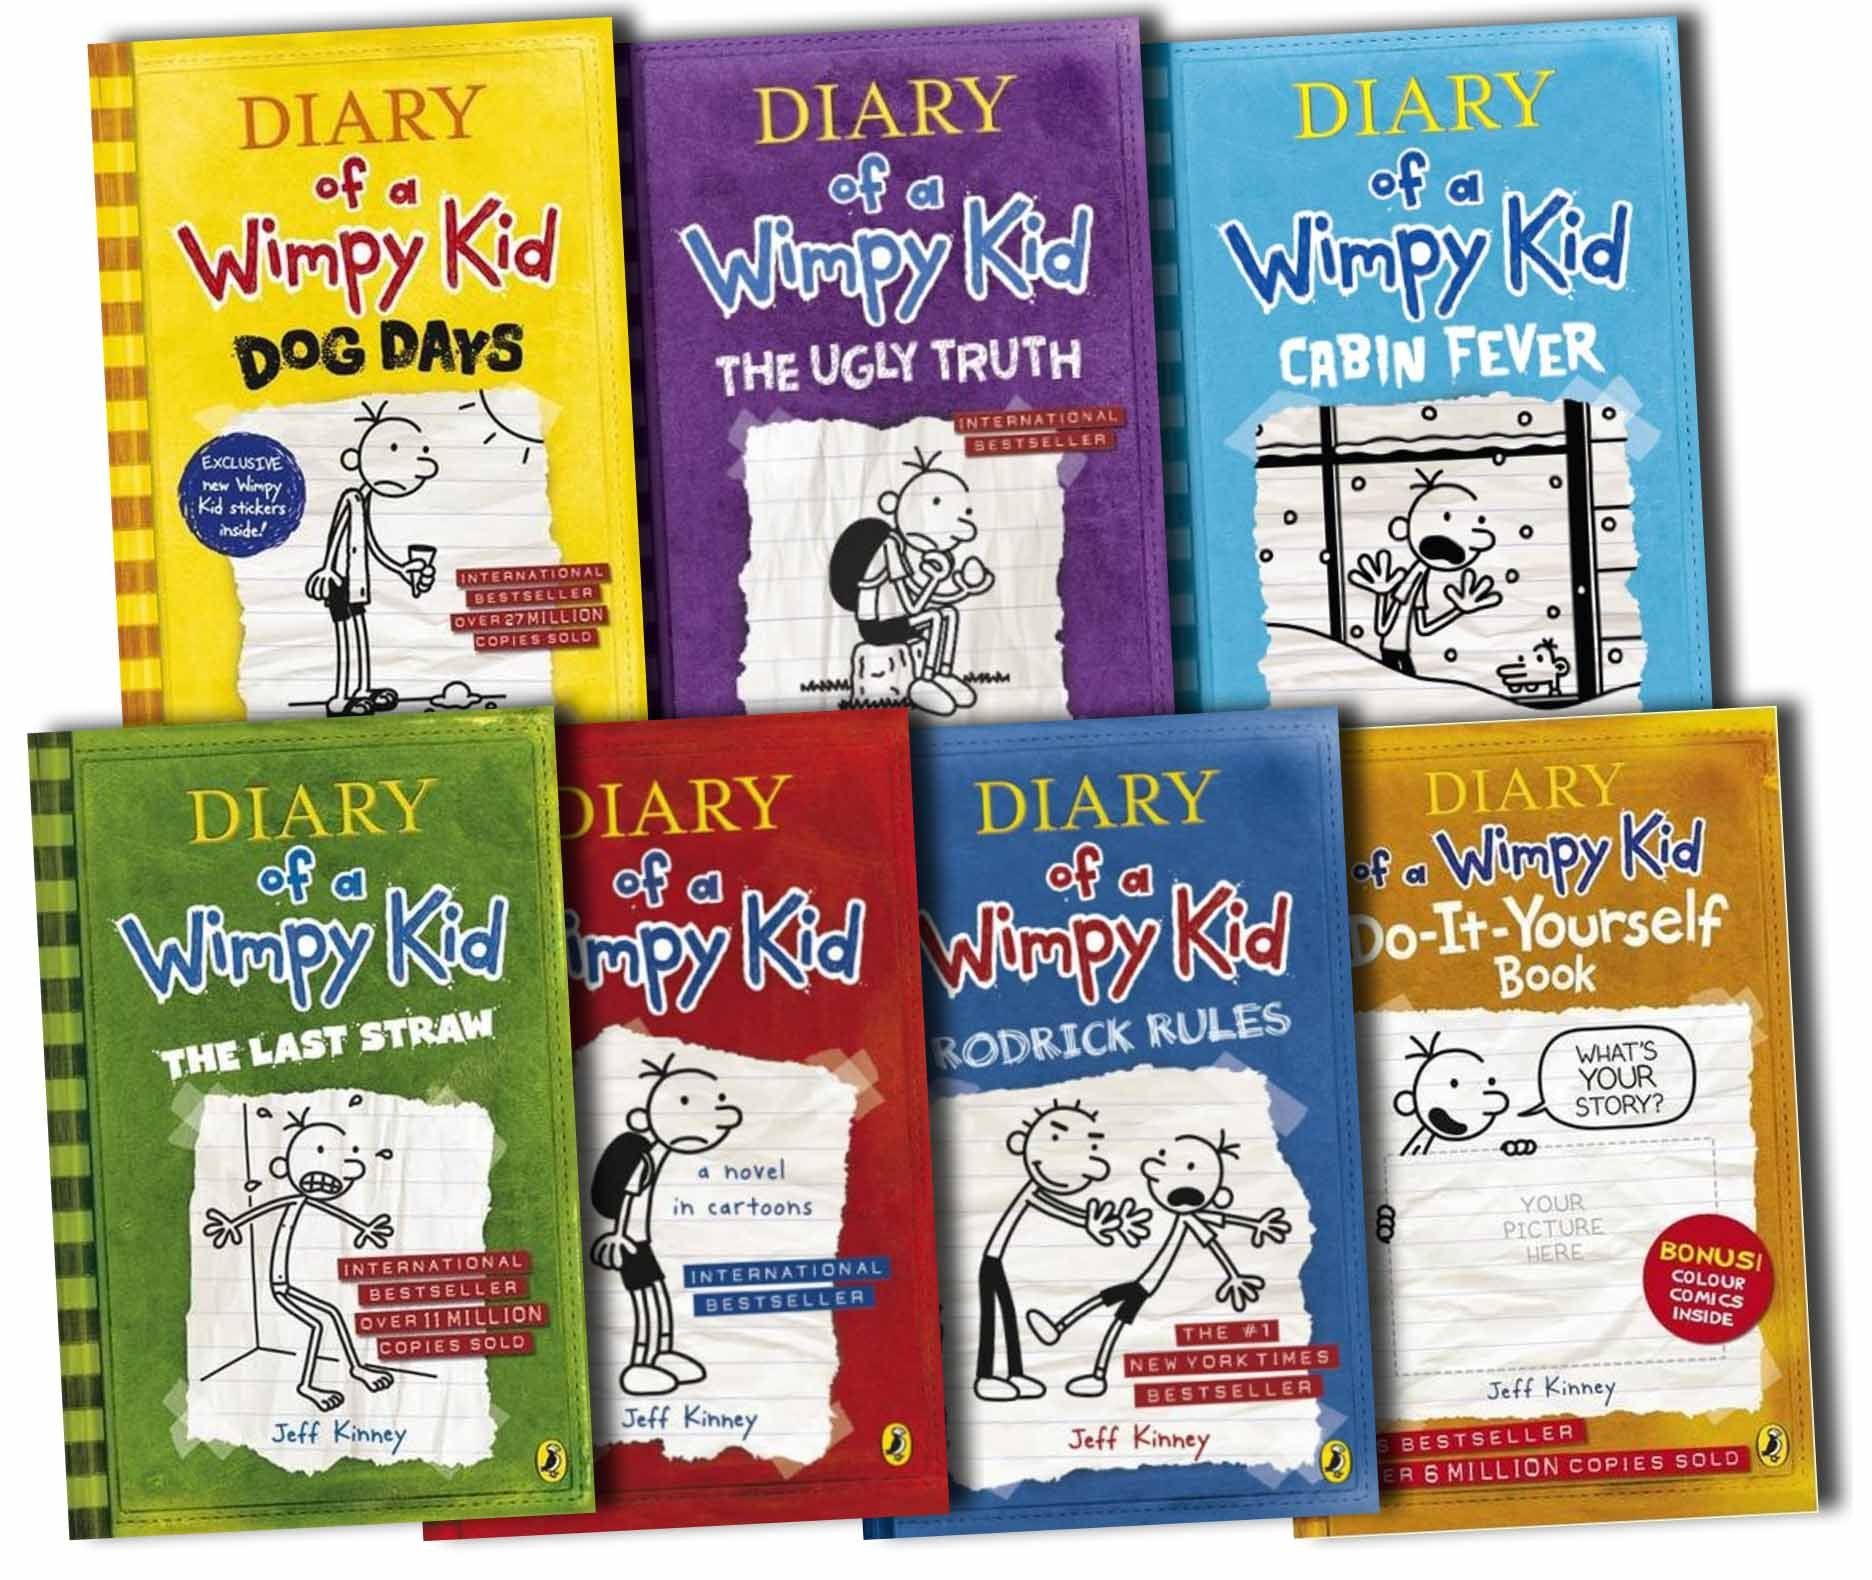 Diary of a wimpy kid collection paperback by jeff kinney diary of a wimpy kid collection paperback by jeff kinney 9780141351698 books amazon solutioingenieria Image collections